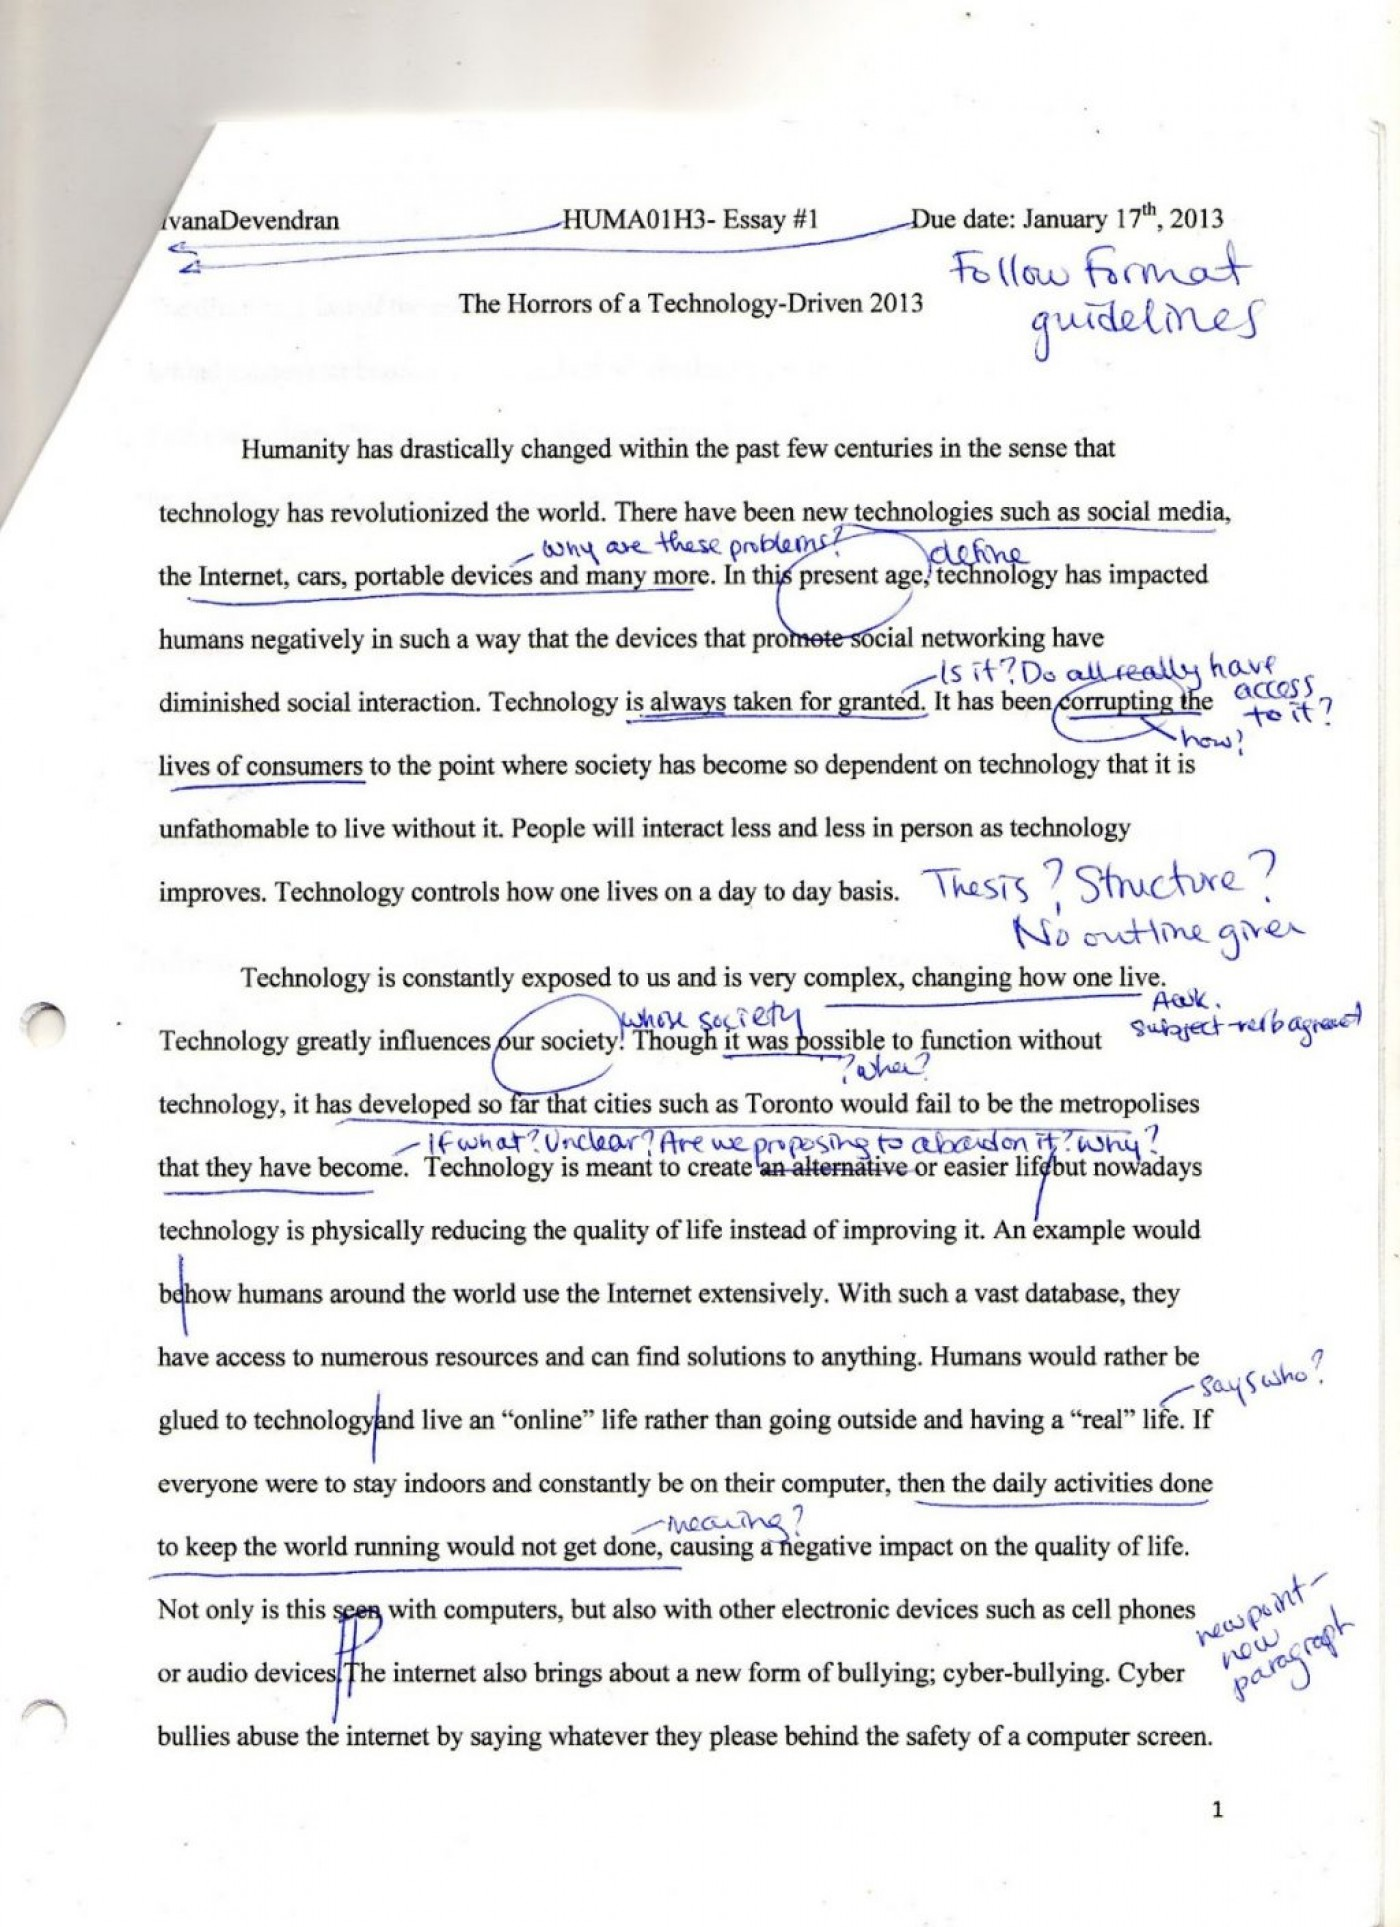 012 Popular Music Researchr Topics Essay Img008 What Should You Avoid In Writing Humanities Appreciation Questions Classical History Persuasive20 1024x1410 Fantastic Research Paper Related 1400